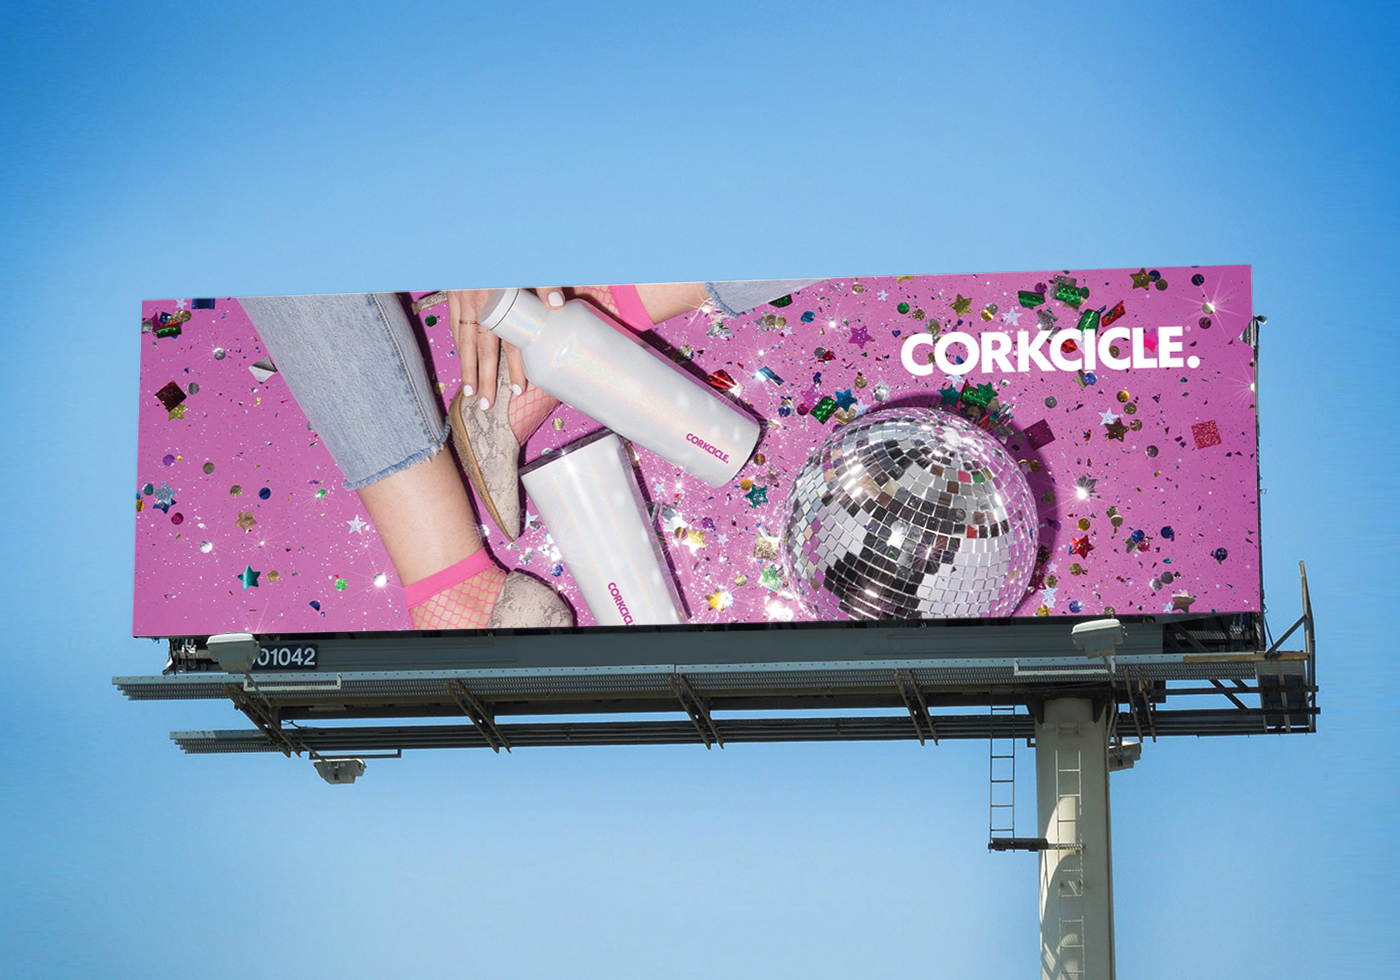 Corkcicle Advertising